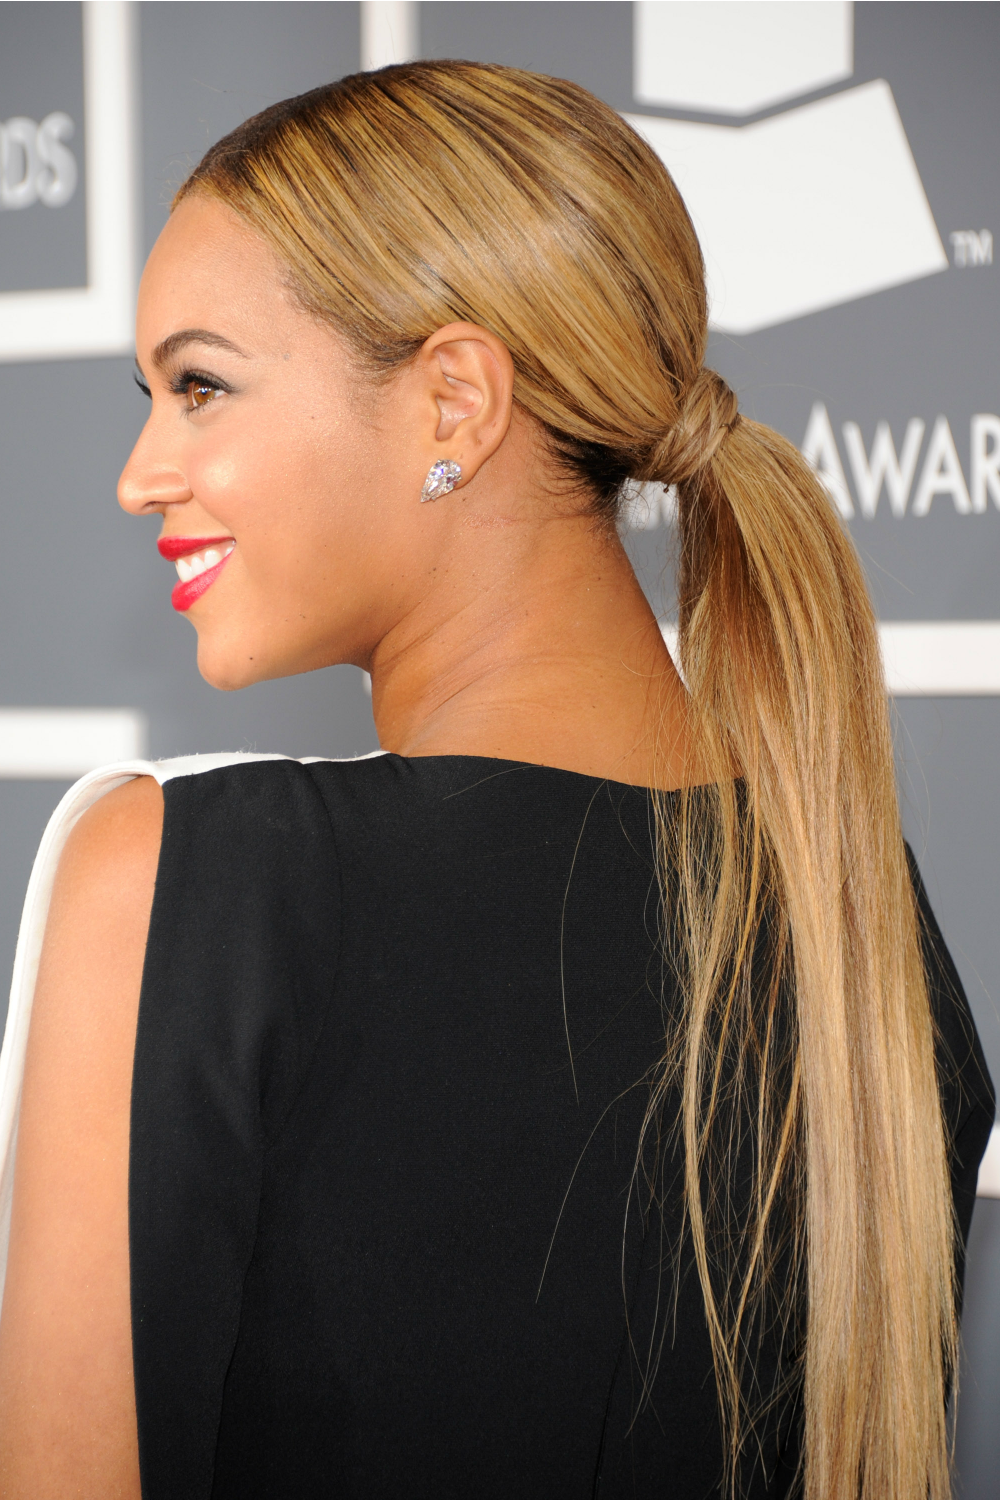 Miraculous 20 Ponytail Hairstyles Incredibly Easy Ponytails You Should Try Now Short Hairstyles For Black Women Fulllsitofus